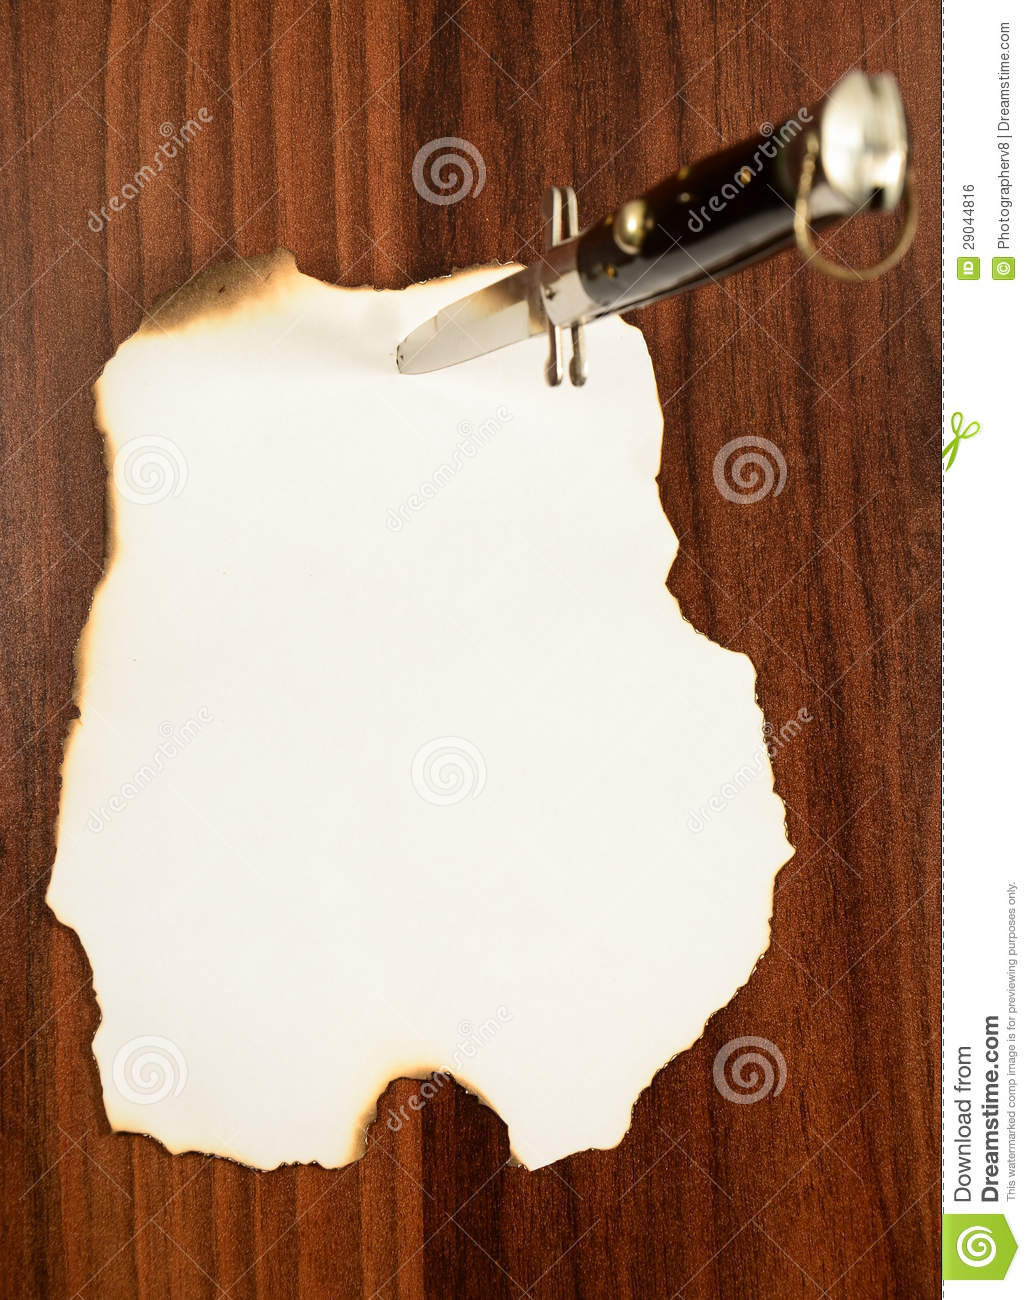 ... Free Stock Image: Wood stuck a knife and note paper. Image: 29044816